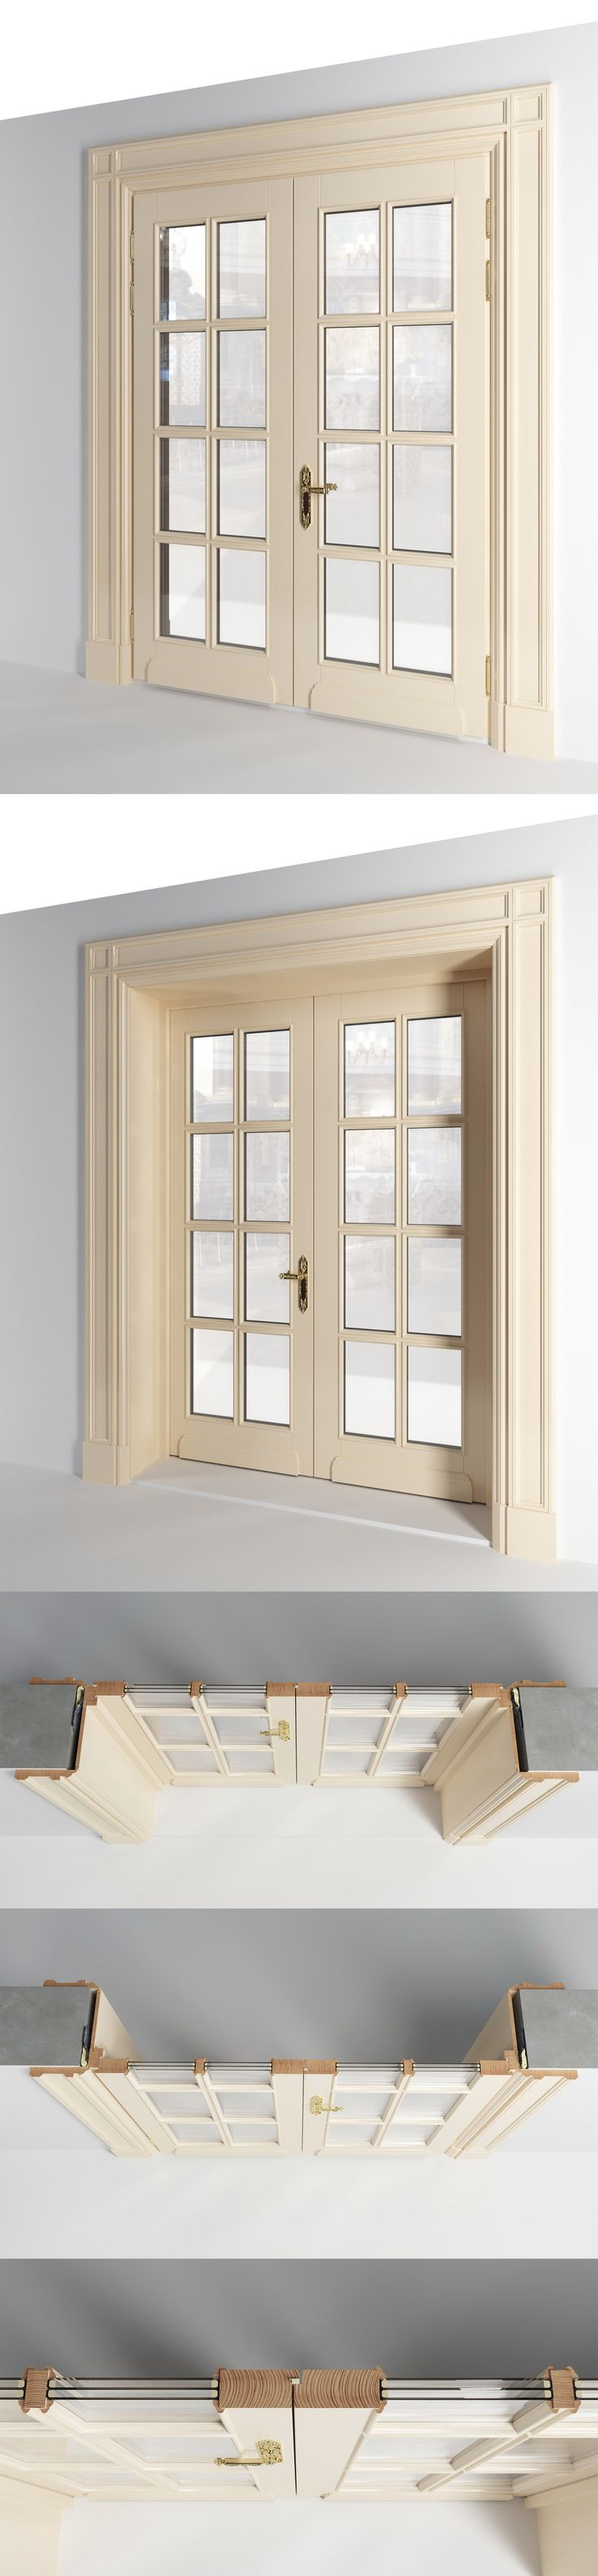 Product modeling & visualization. Neoclassical door / Rendering / Software: 3ds max, PS